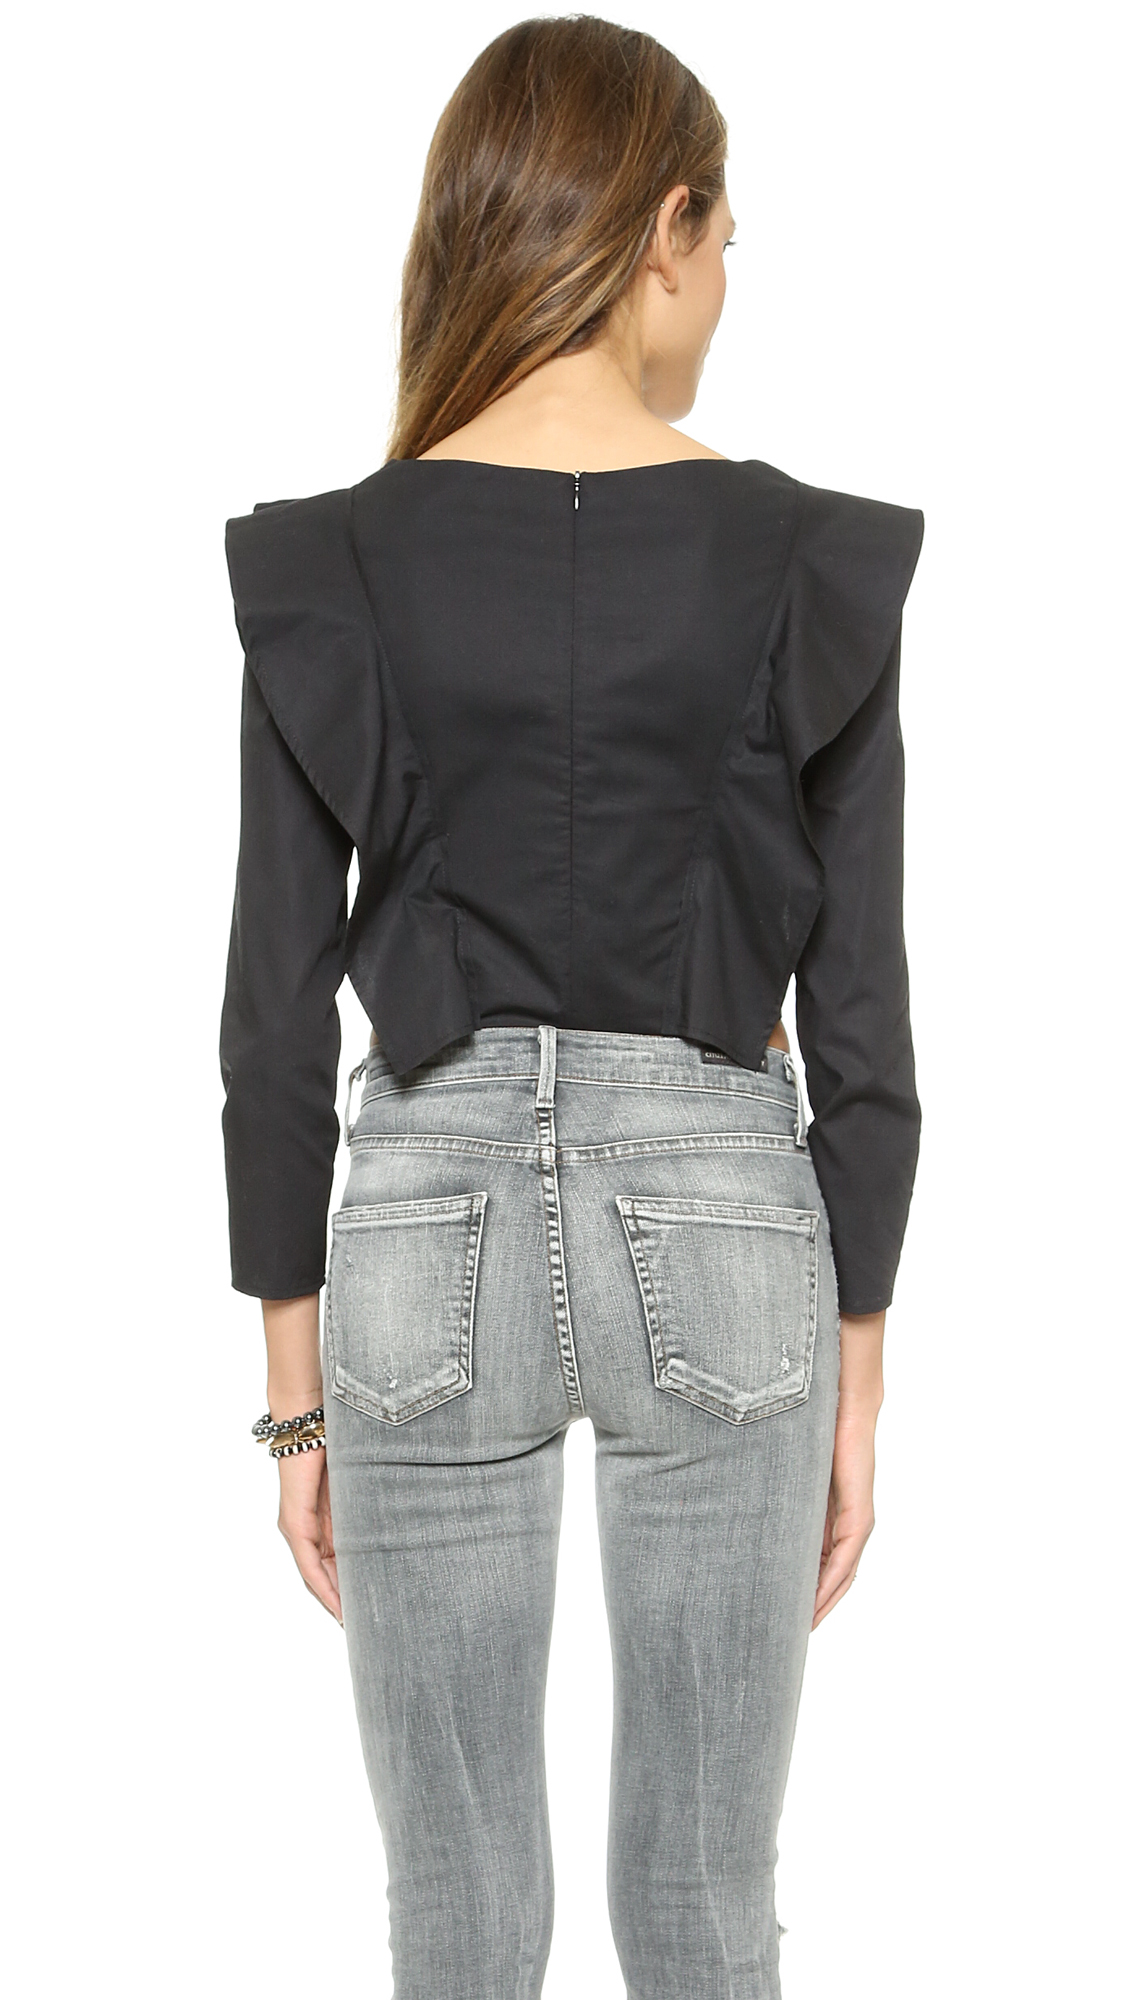 One by viva aviva magnolia long sleeve crop top